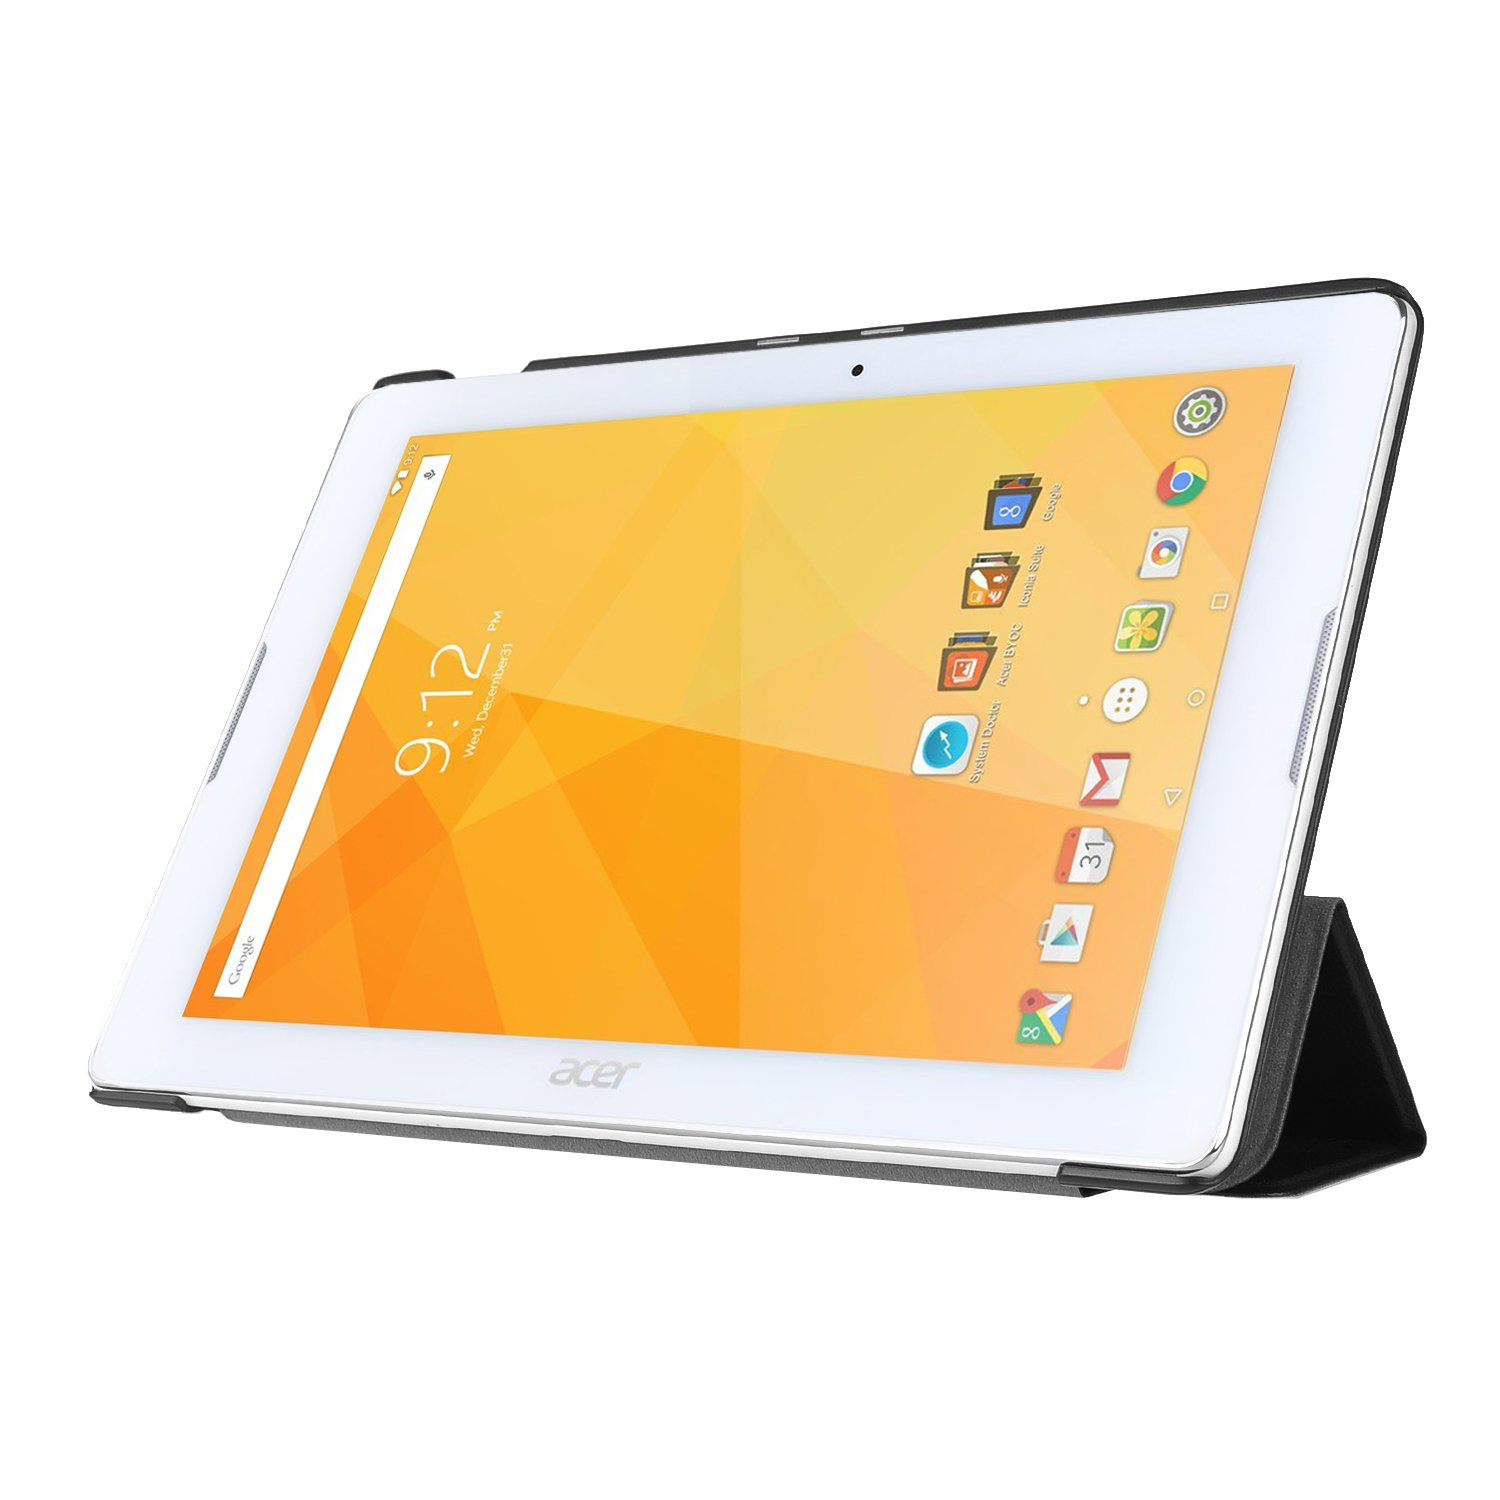 ELTD Acer Iconia One 10 B3-A20 Funda, Ultra Slim Funda de piel ...